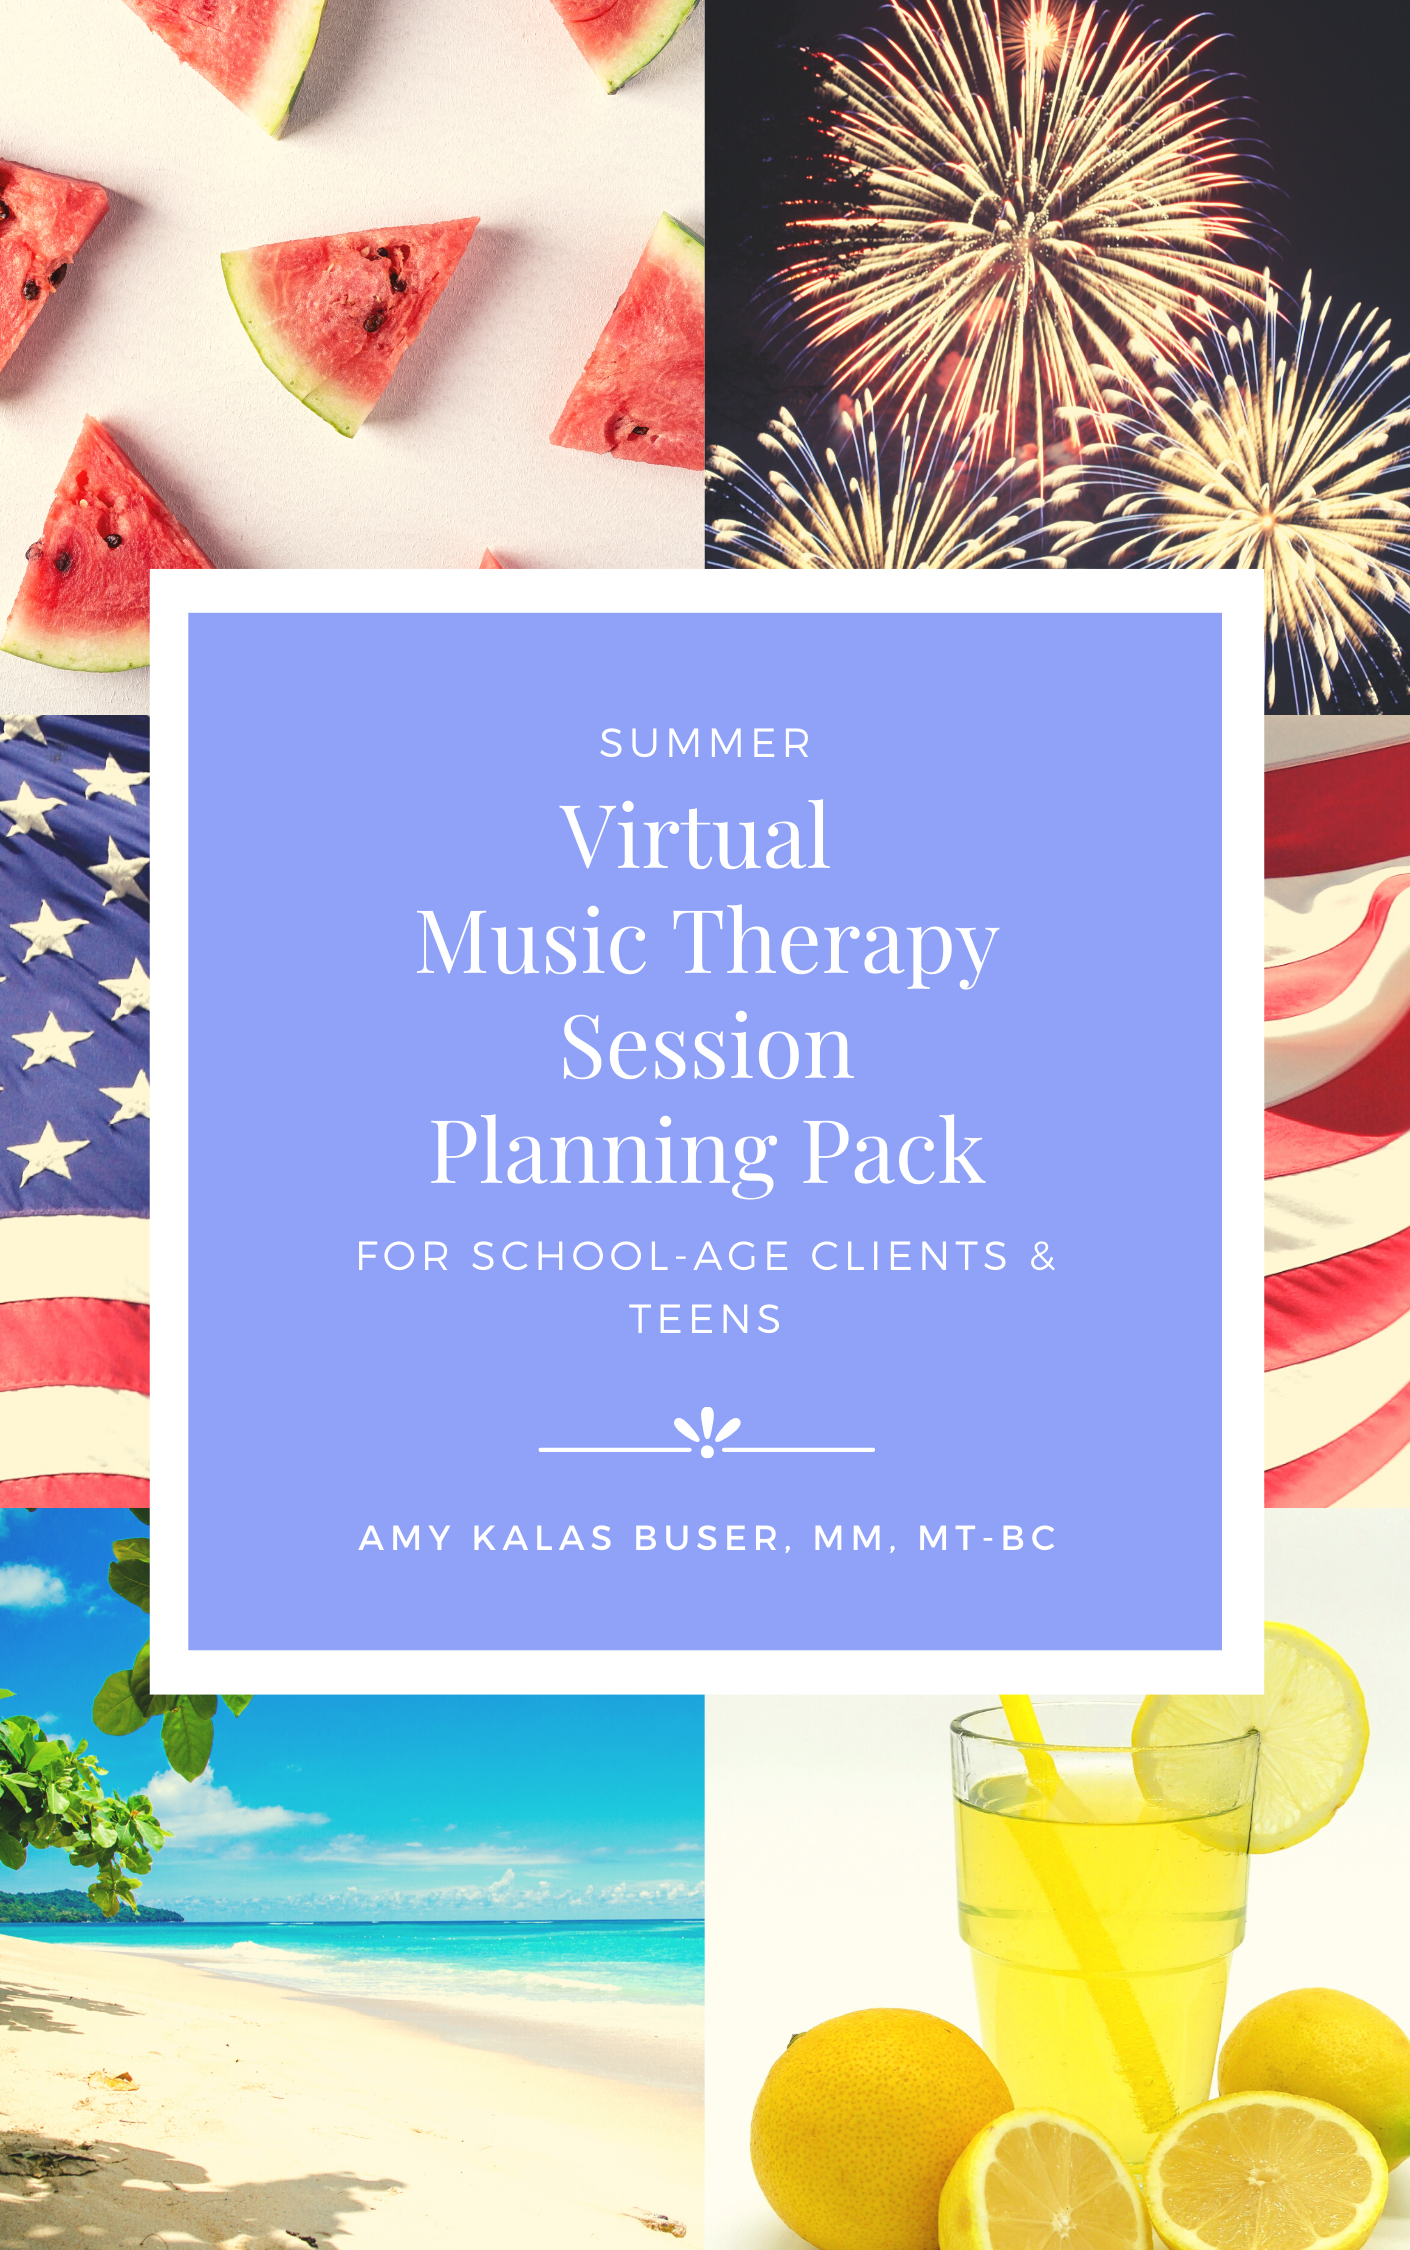 Virtual Music Therapy Session Planning Pack - Summer